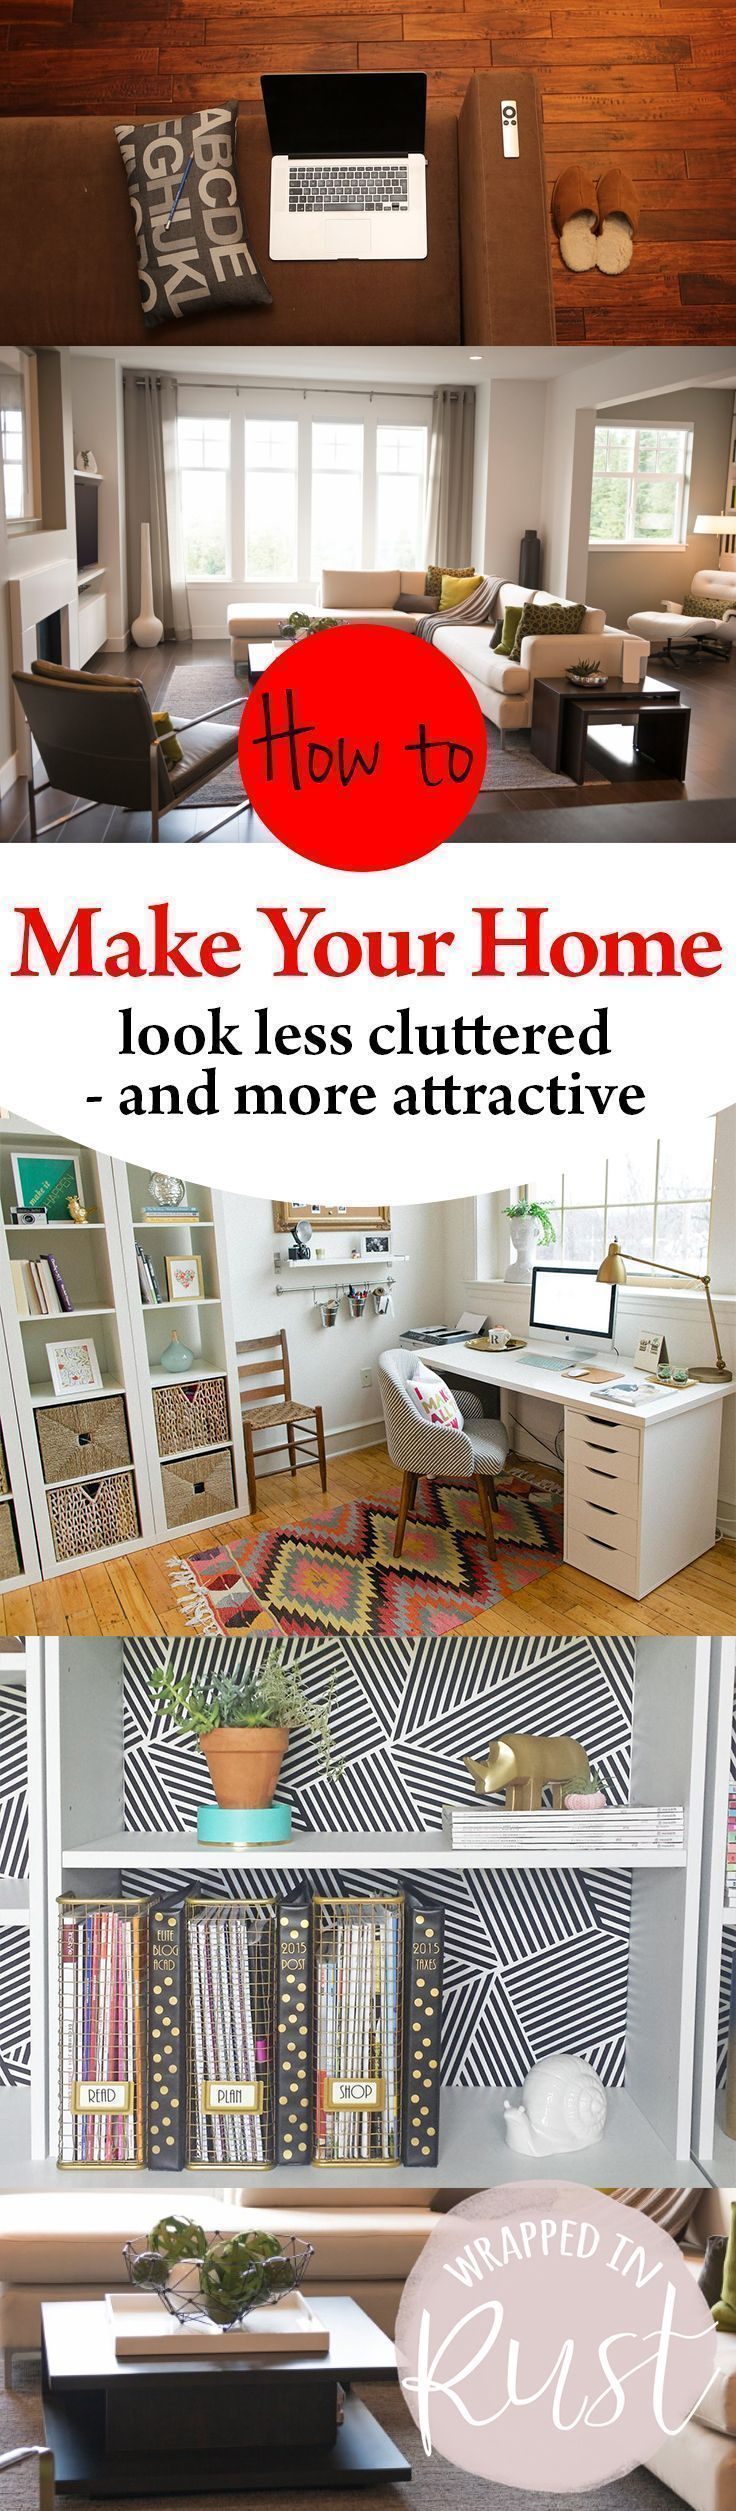 How to Make Your Home Look Less Cluttered — and More Attractive! How to Declutter Your Home, Fast Ways to Declutter Your Home, Home Organization, Organization Tips and Tricks, Fast Ways to Declutter Your Home, Home Declutter Tips and Tricks..Call today or stop by for a tour of our facility! Indoor Units Available! Ideal for Outdoor gear, Furniture, Antiques, Collectibles, etc. 505-275-2825 #tipstodeclutteryourhome #homedecluttering